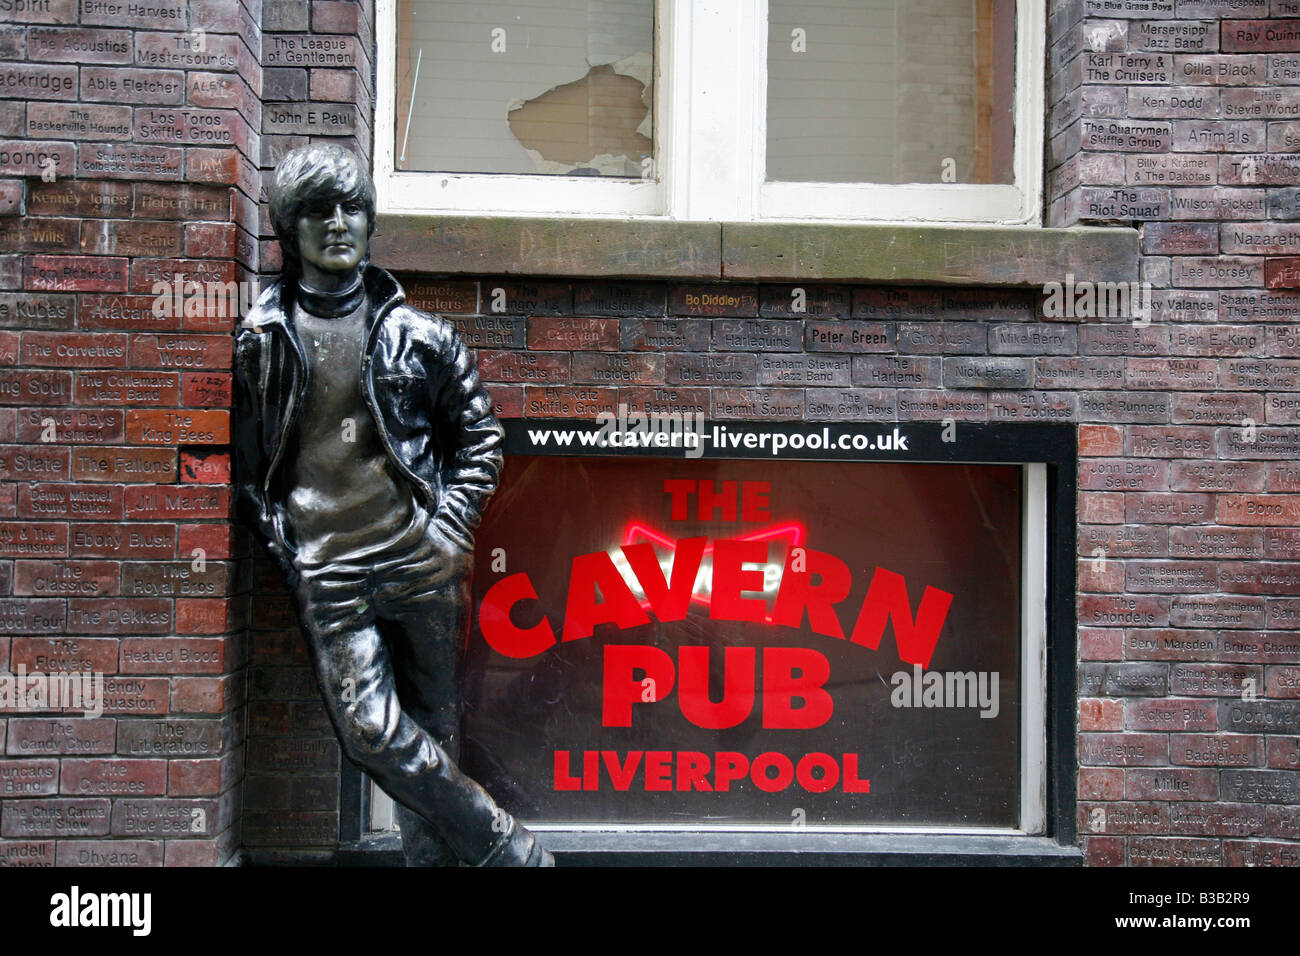 Juli 2008 - John Lennon-Statue von Cavern Wall of Fame in Mathew Street Liverpool England UK Stockbild